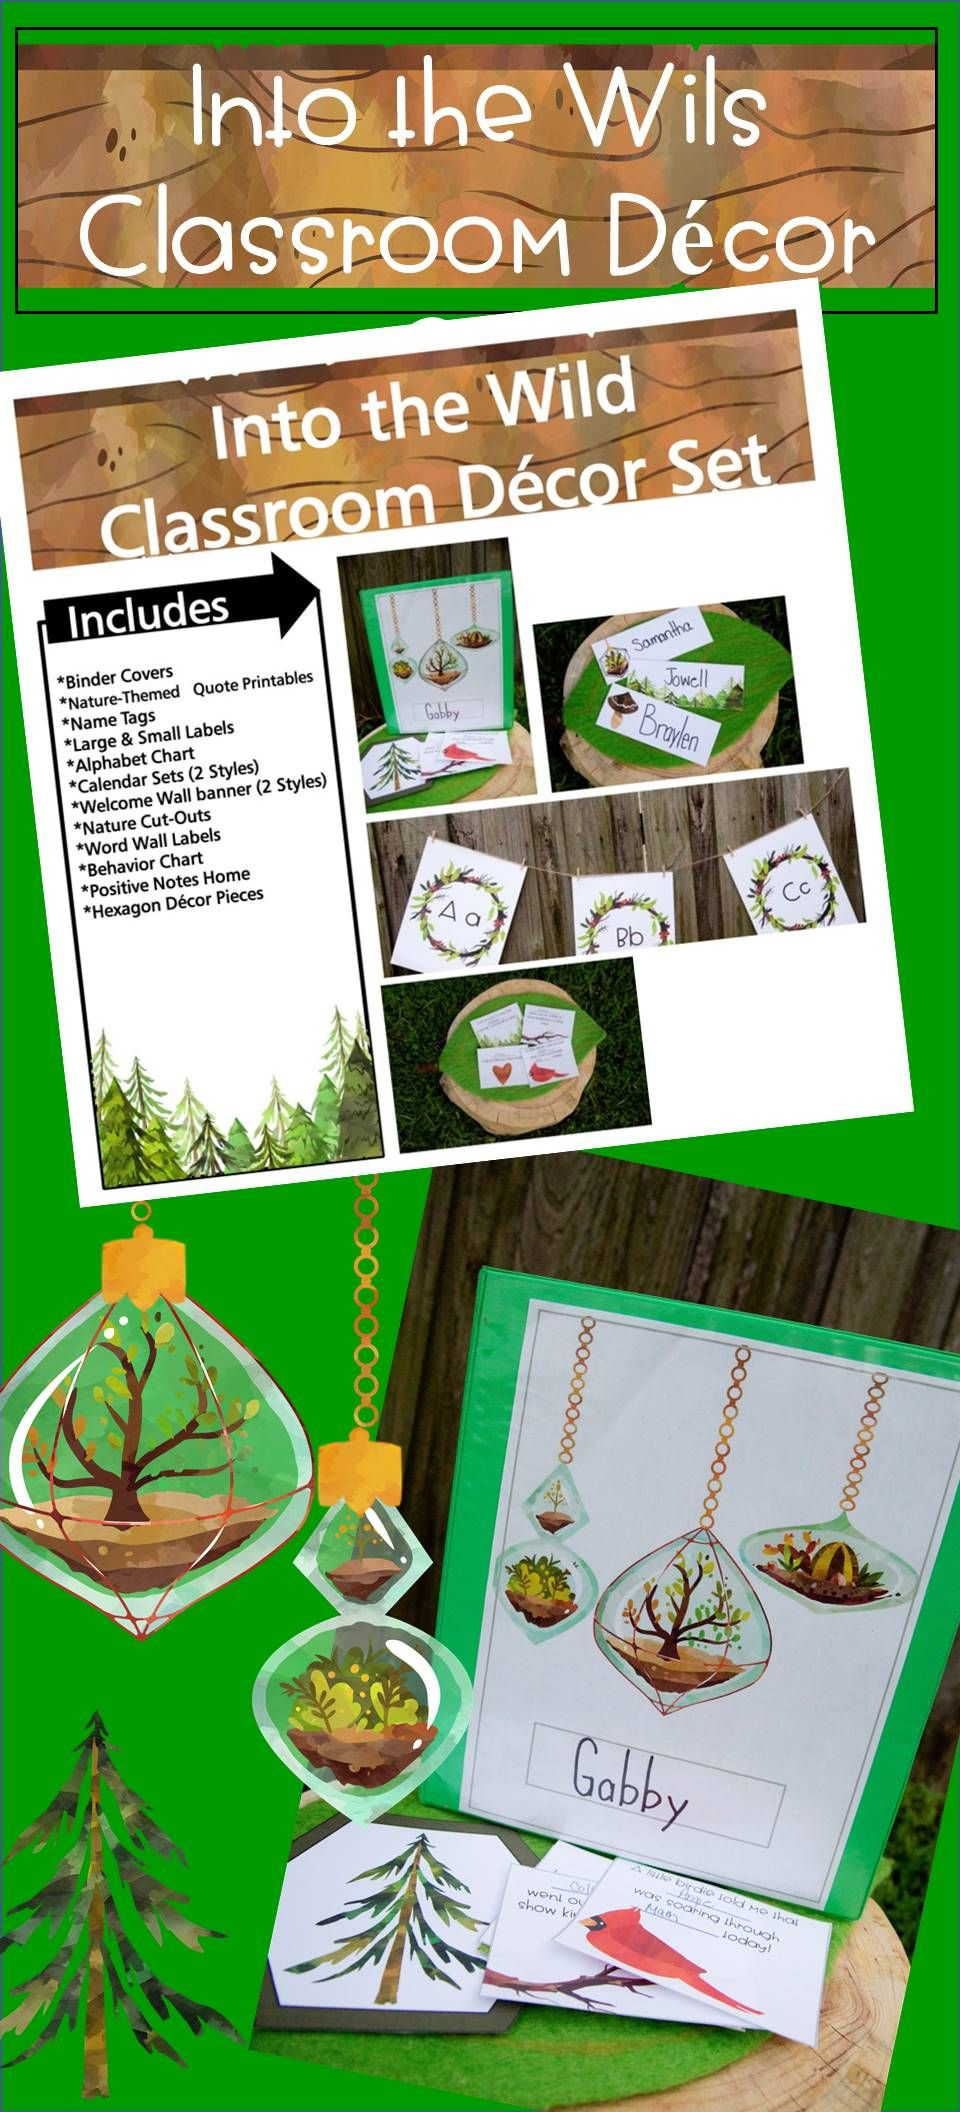 Into the wild classroom decor set coloring books pinterest